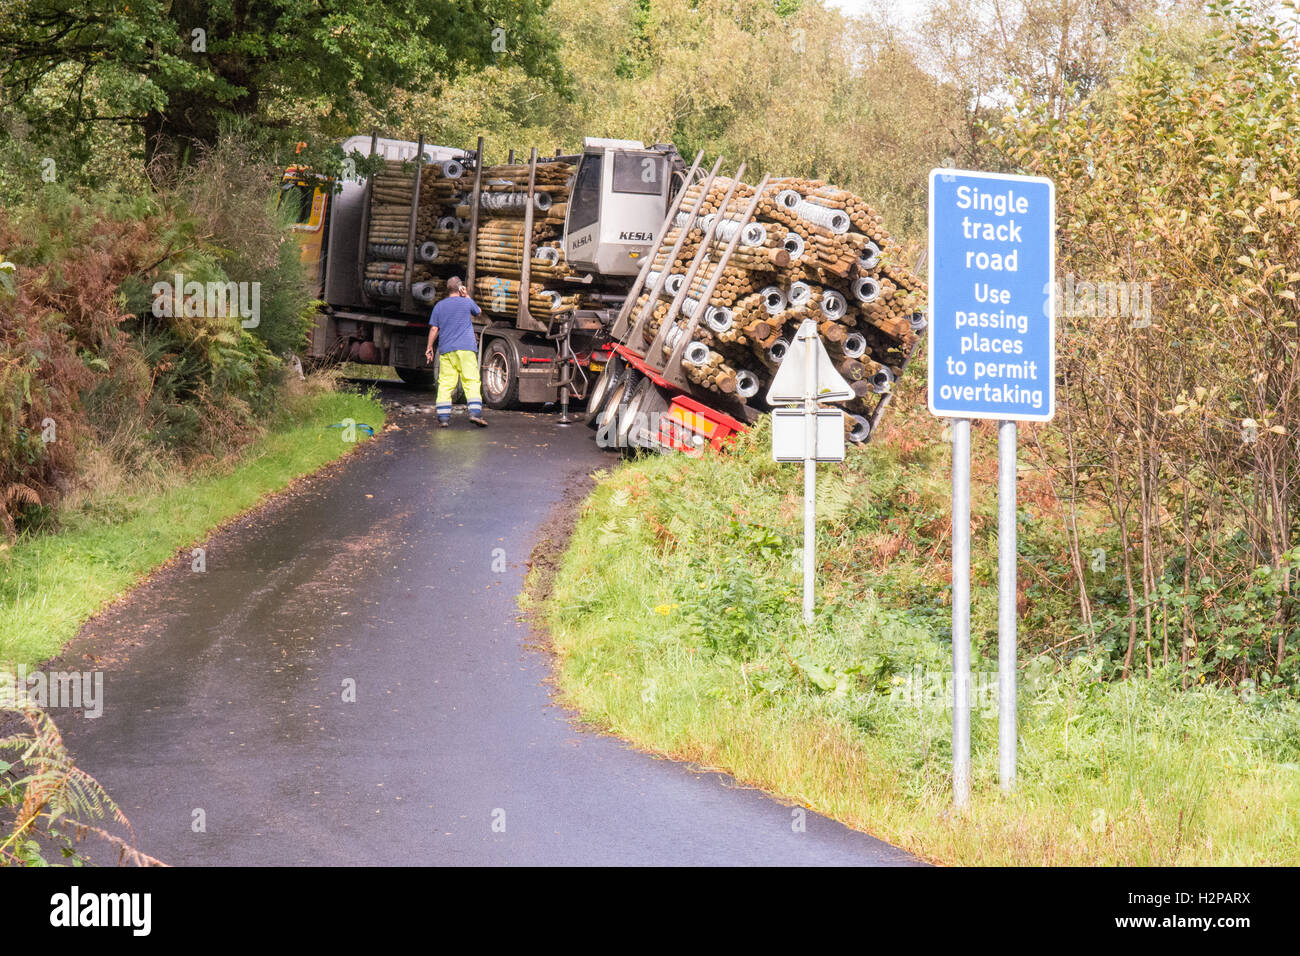 large articulated timber lorry carrying timber fencing partially slipped off narrow country road in Scotland, UK - Stock Image